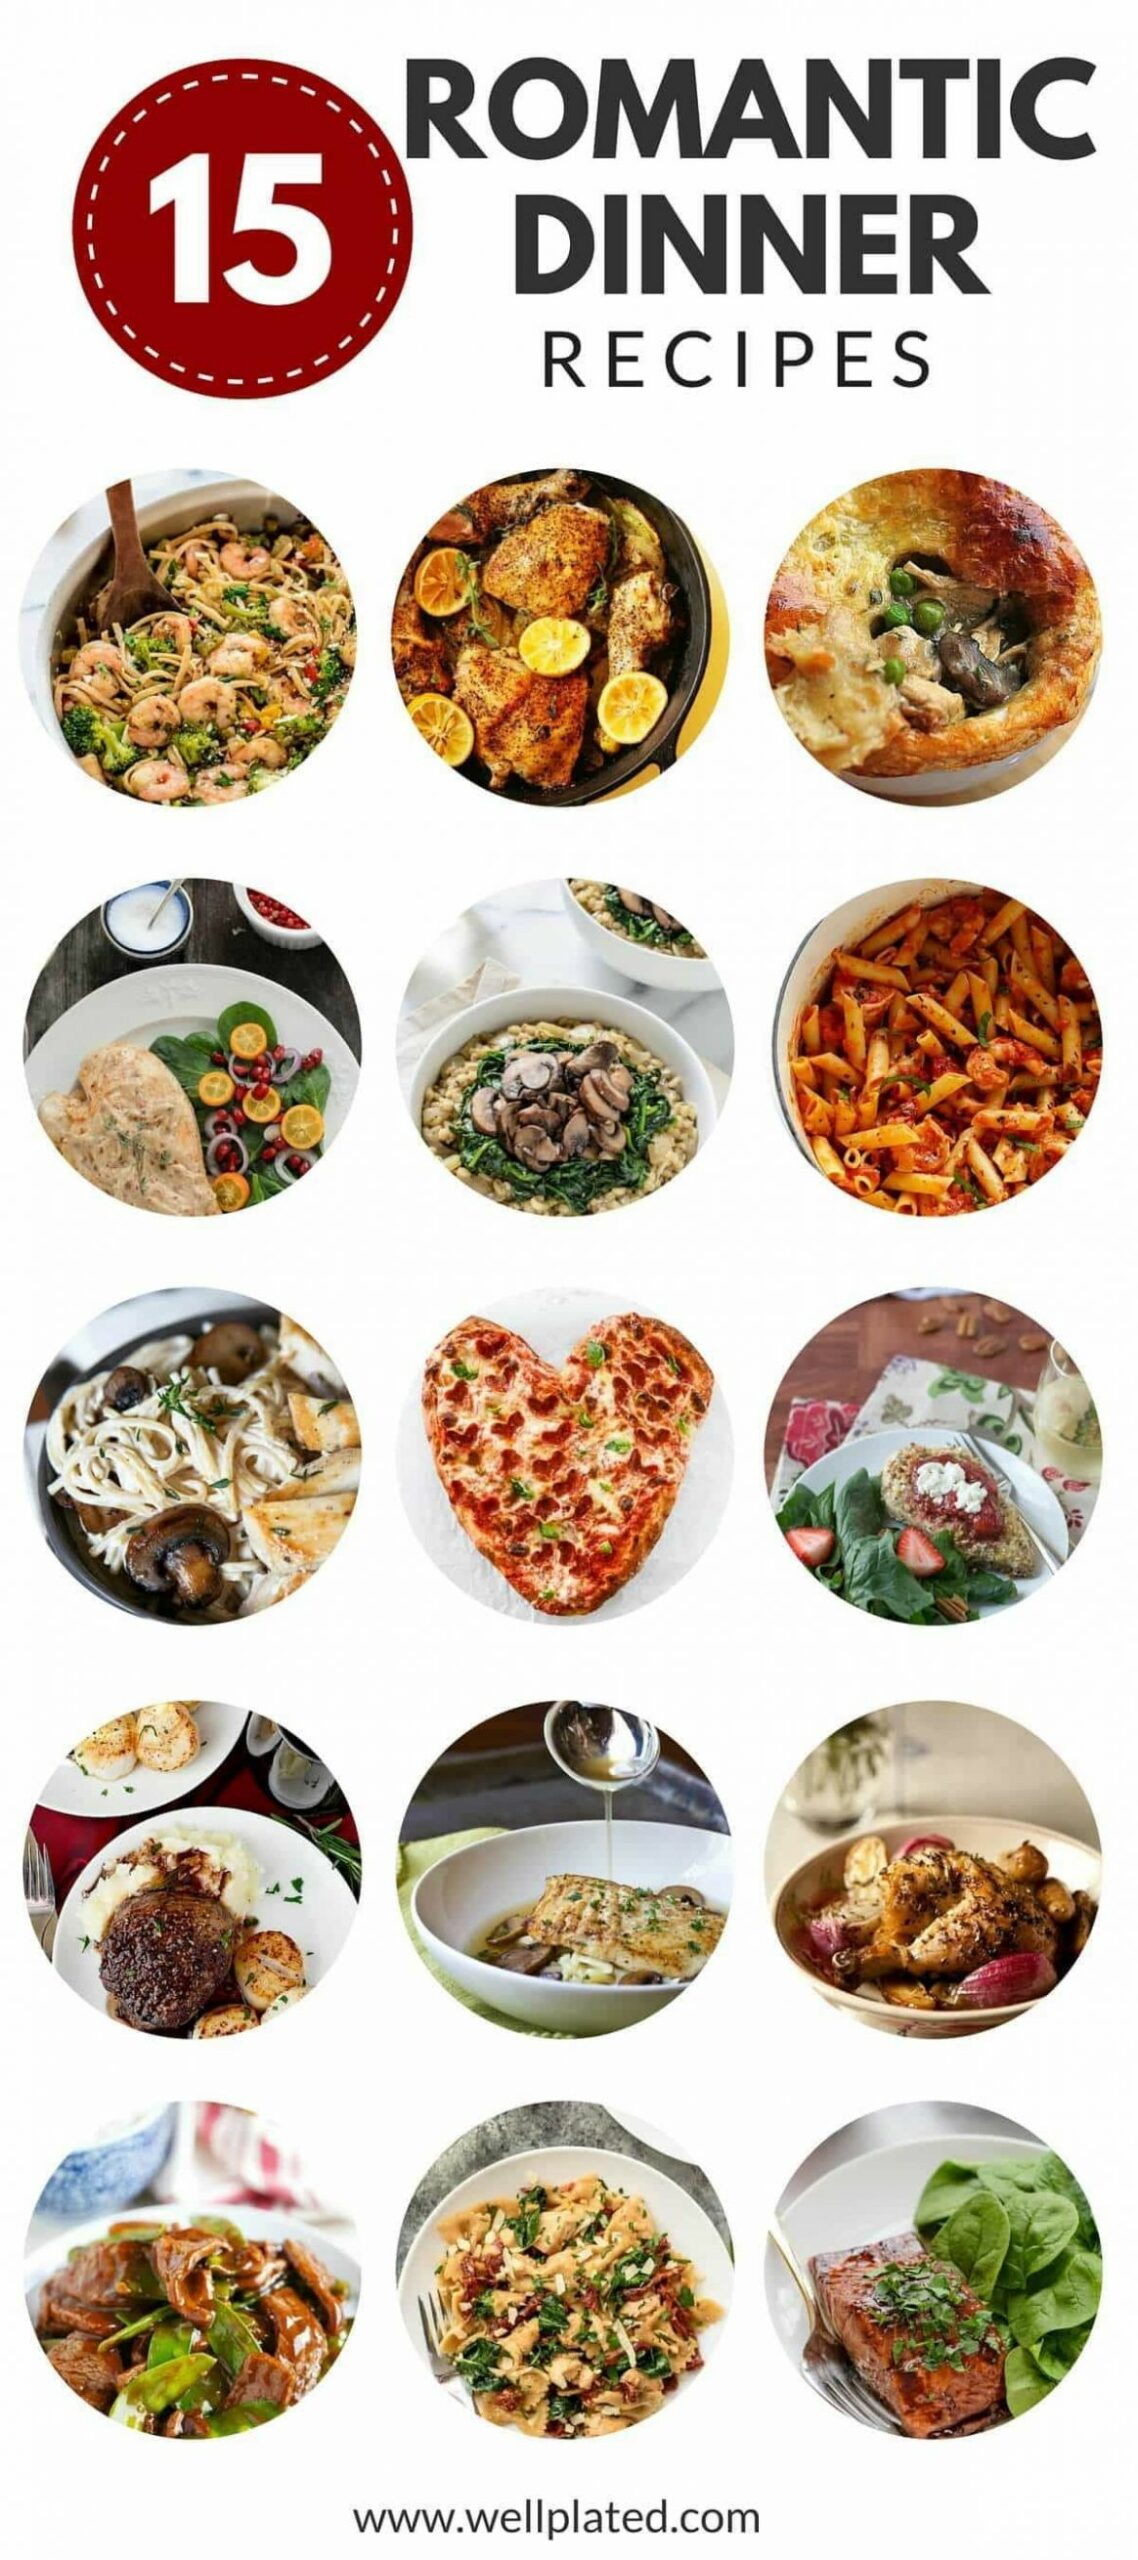 No-fuss romantic dinner recipes that are sure to impress on date ..